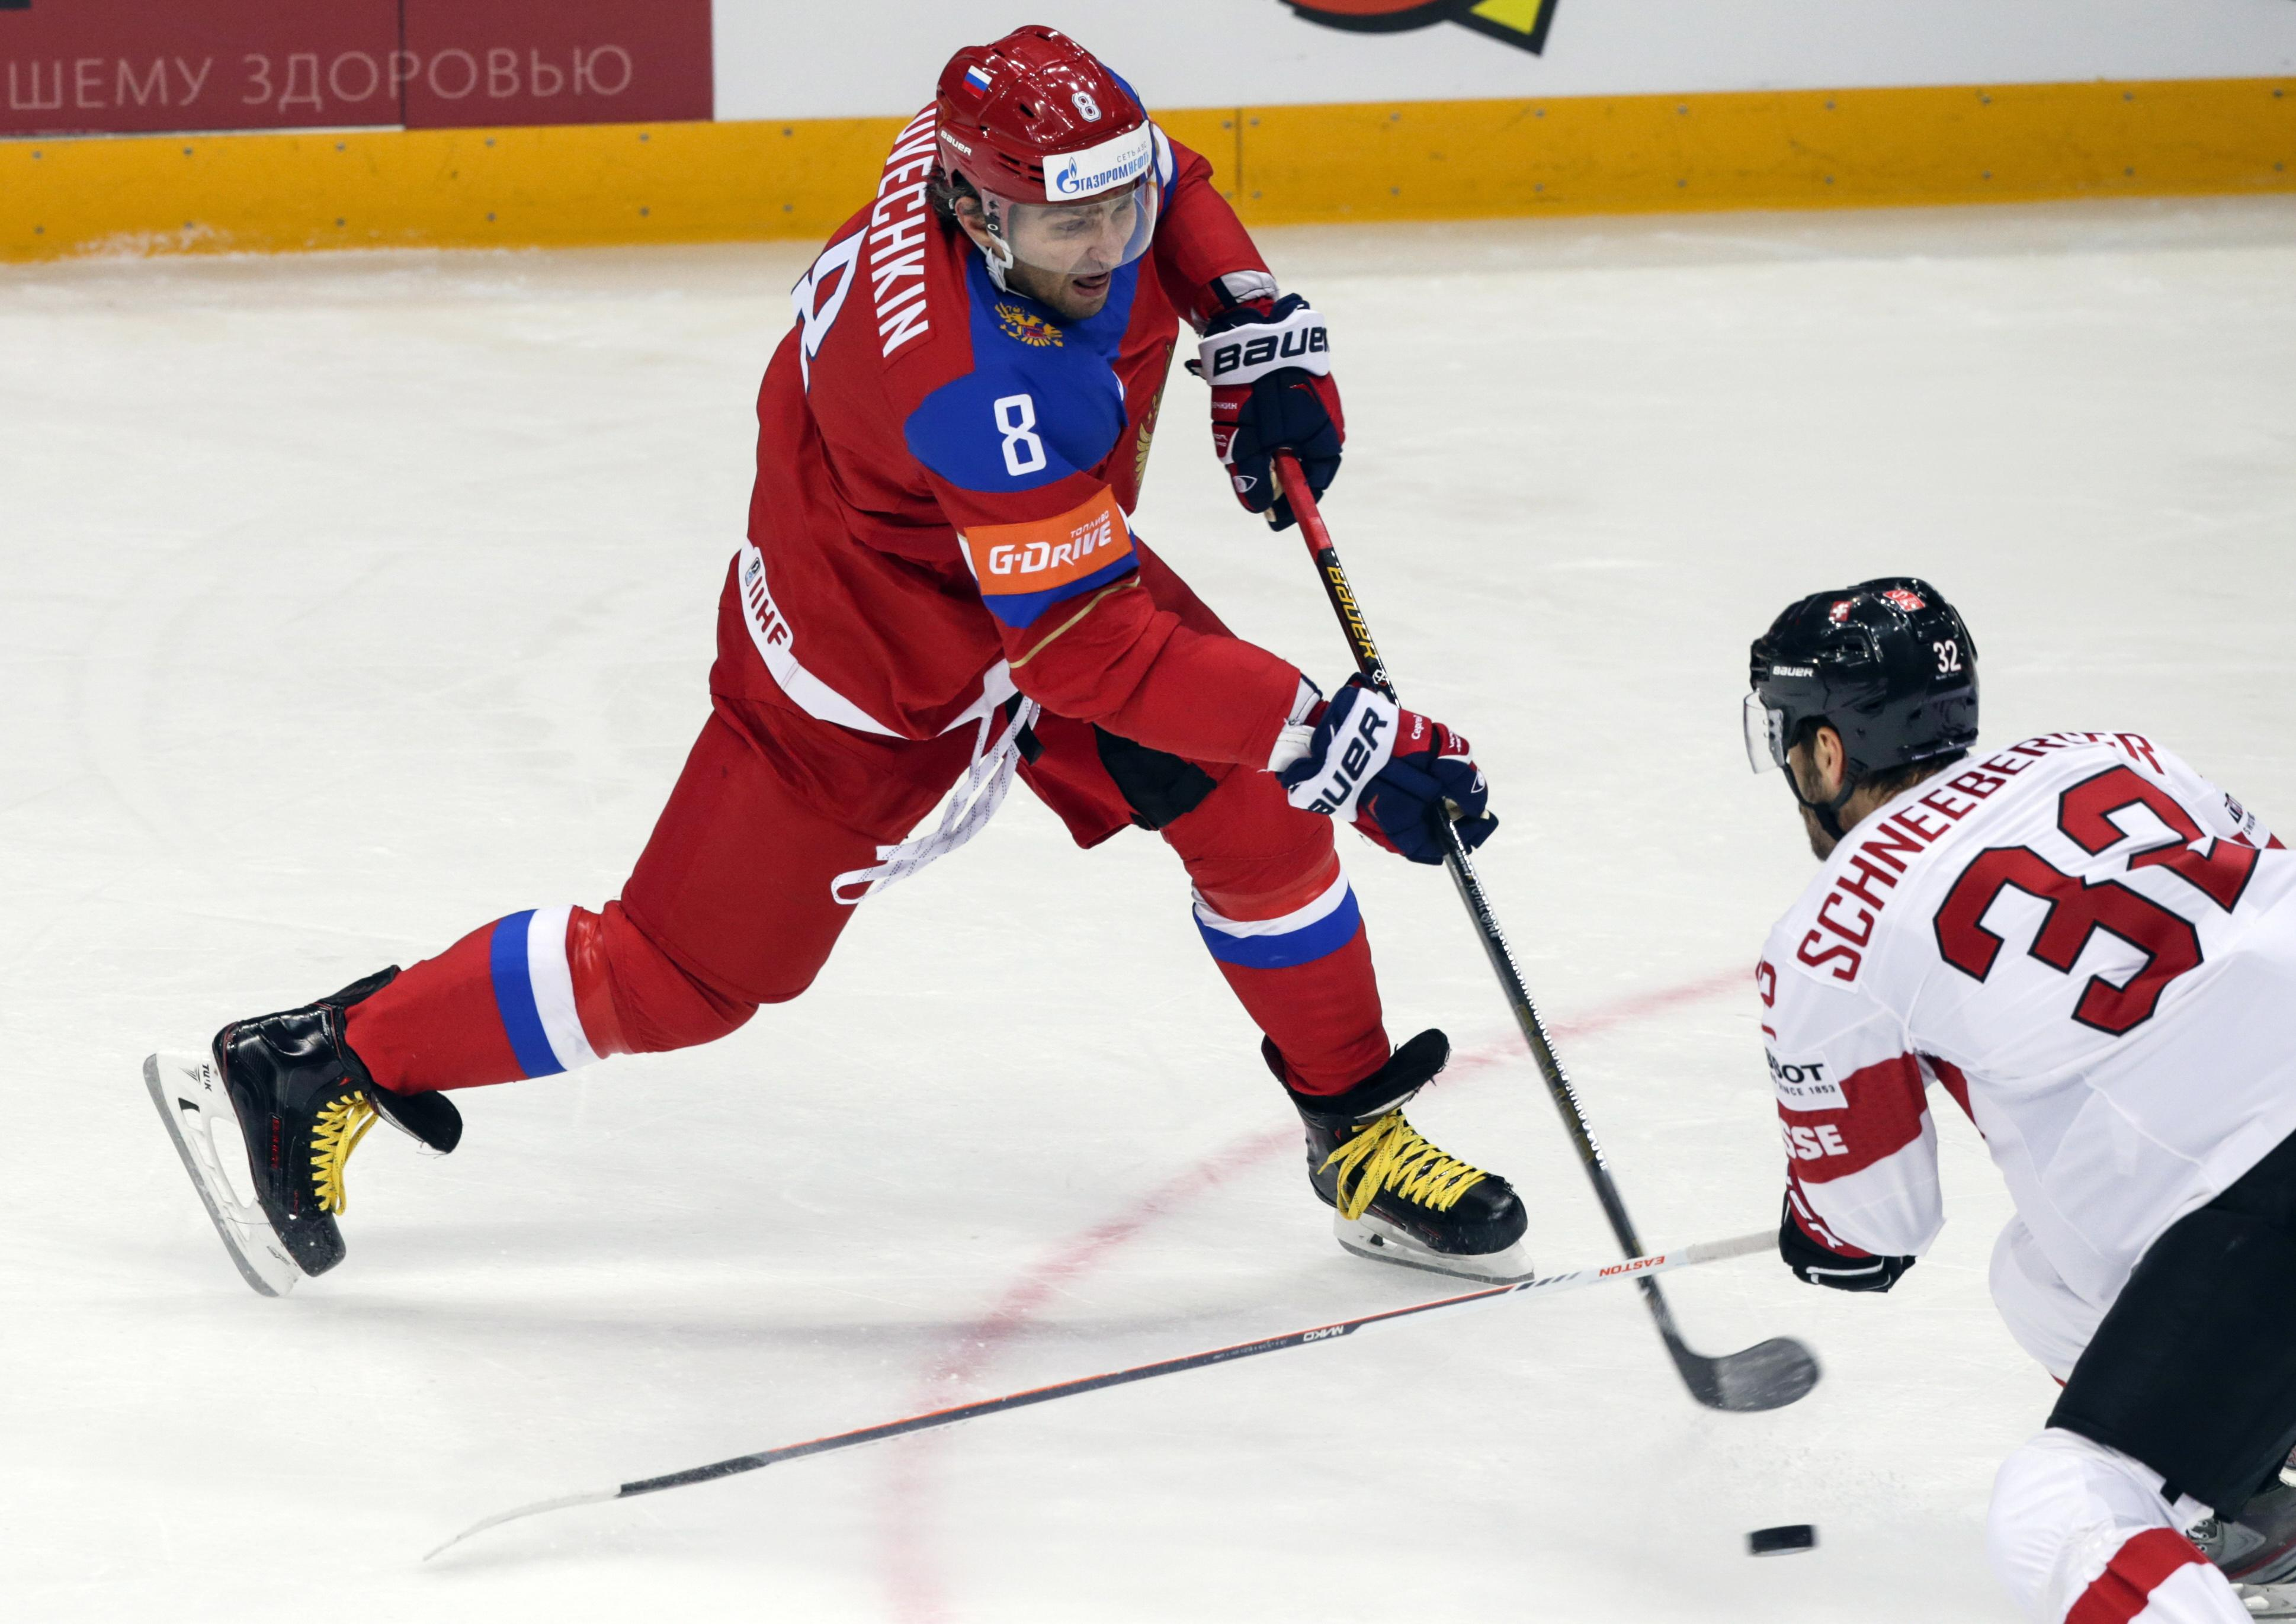 Russia_hockey_worlds